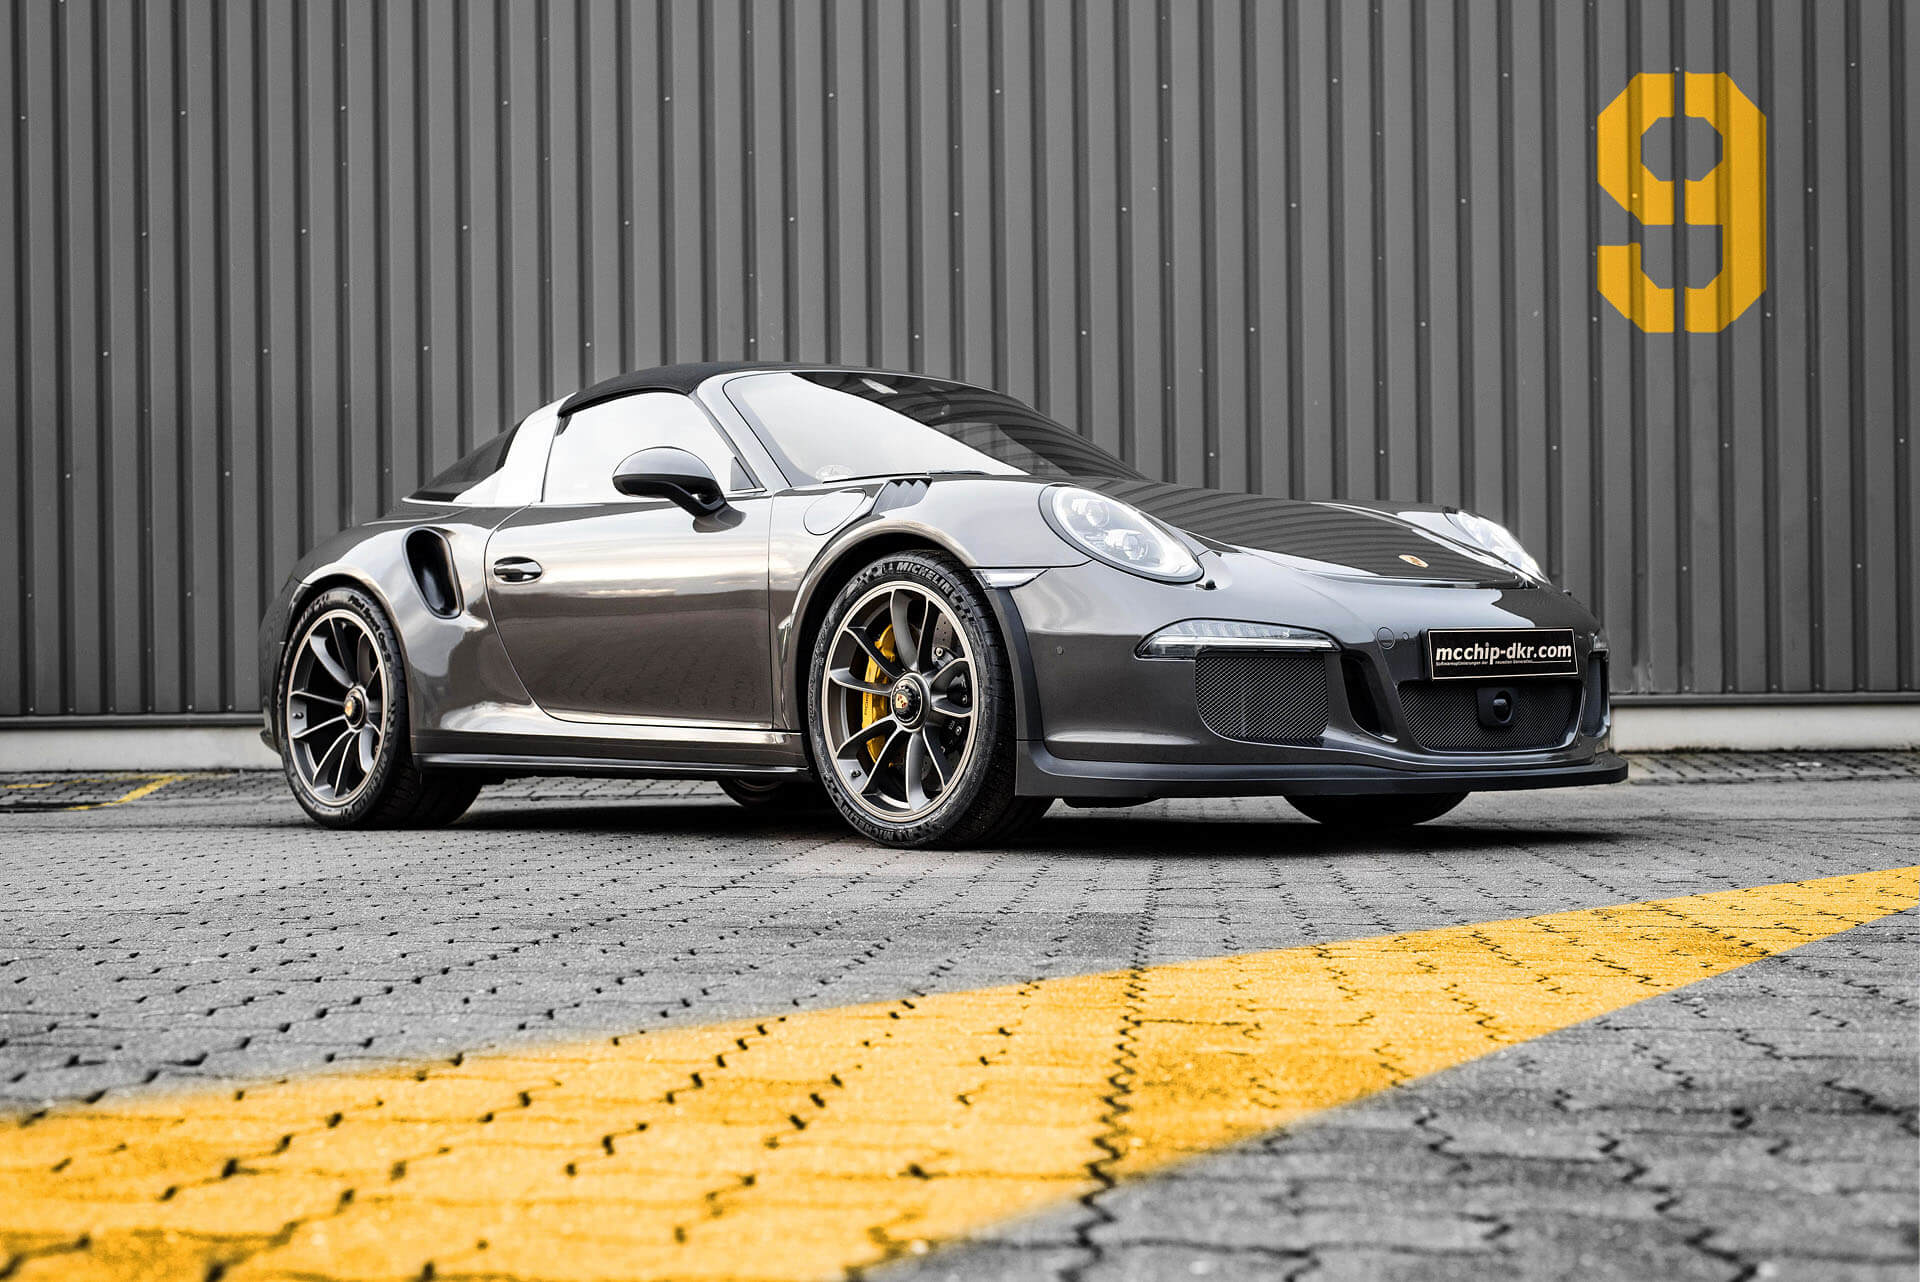 Porsche 991 targa gt3 rs by mcchip dkr is the definition of unique sciox Image collections